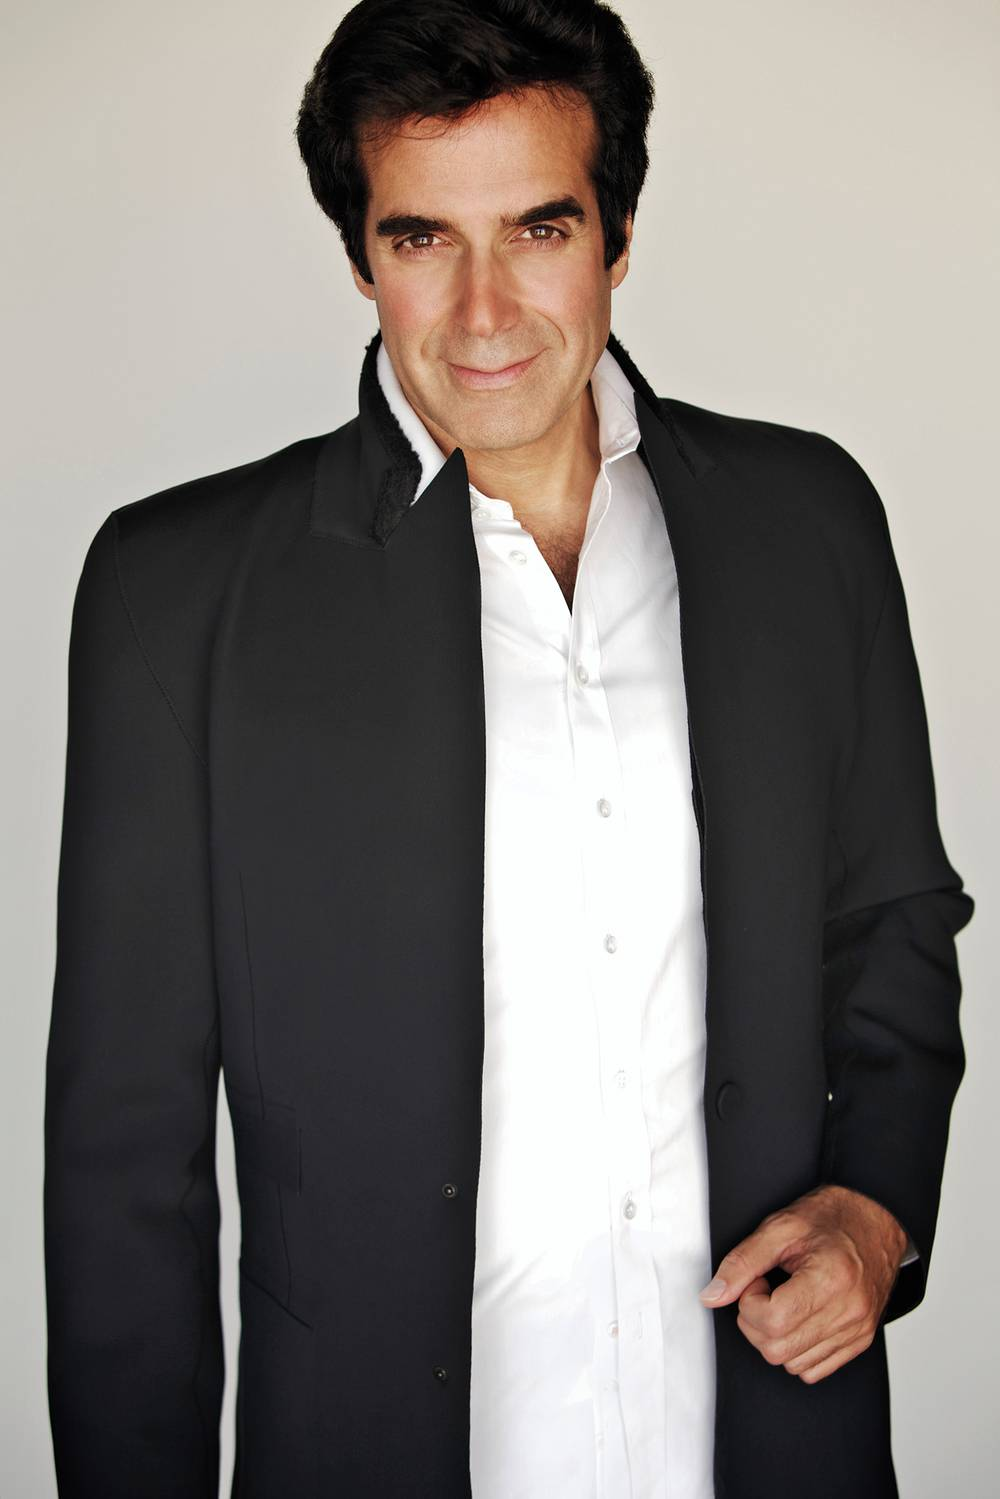 best resident performer david copperfield las vegas weekly best resident performer david copperfield